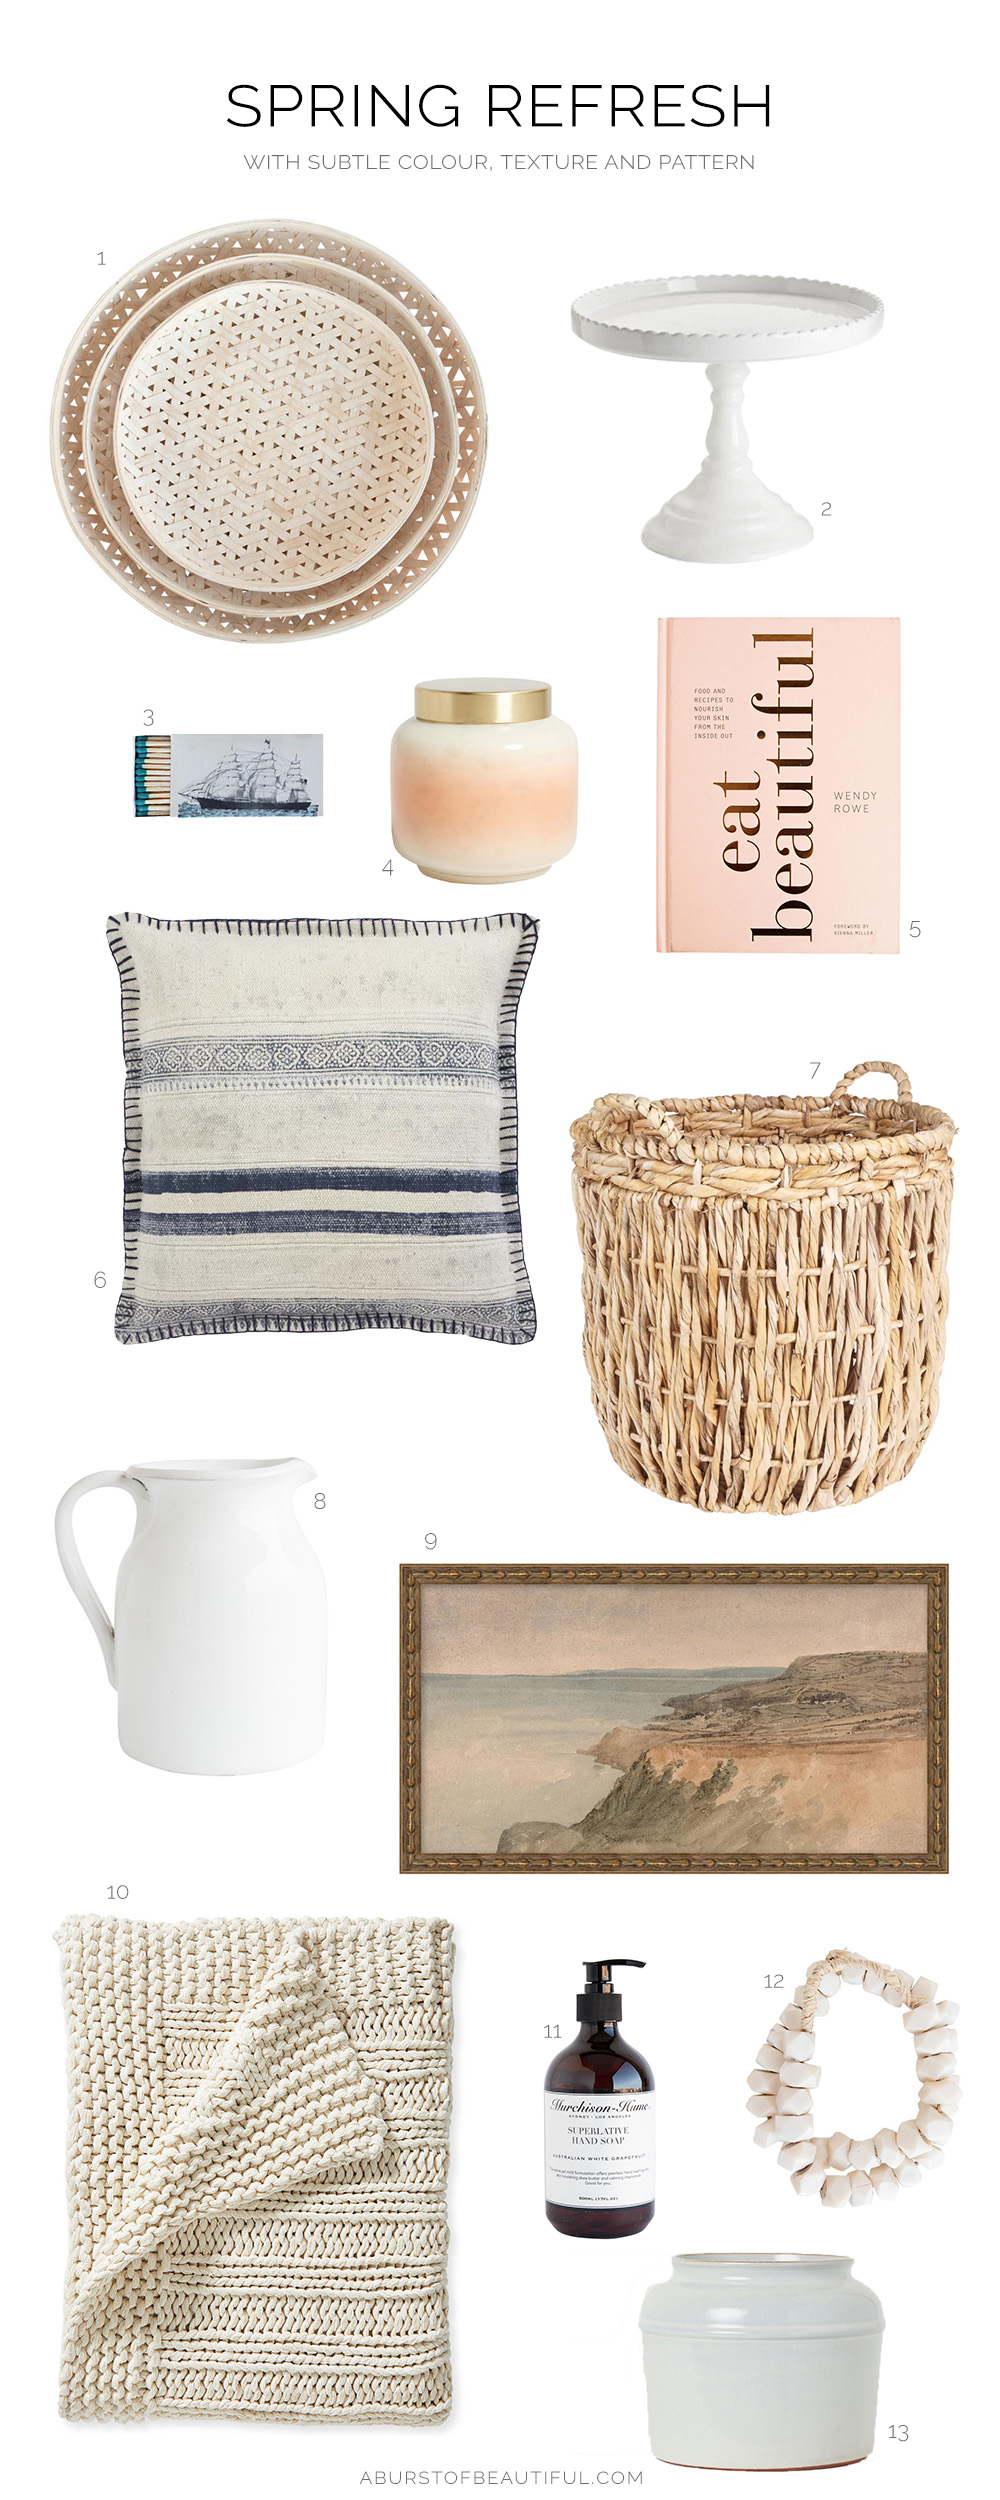 Breathe new life into your home for spring by incorporating pieces with colour, pattern, and texture.